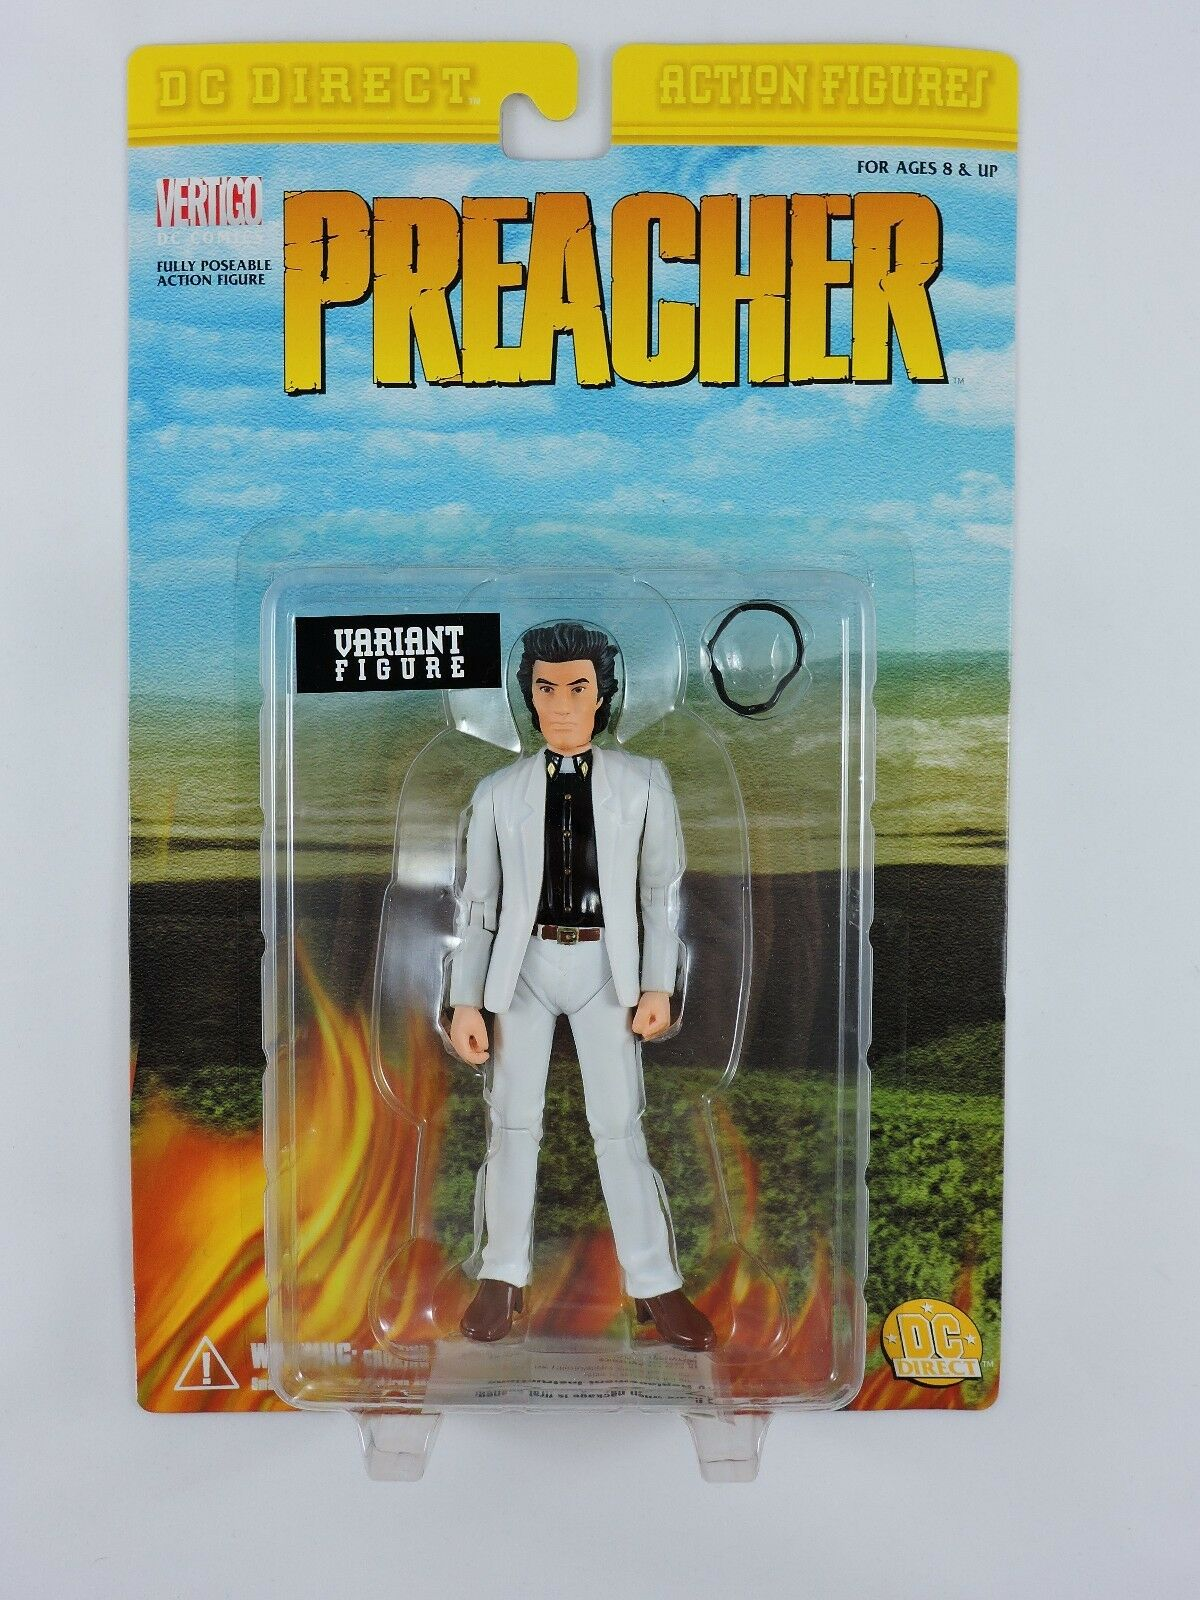 PREACHER Variant Figure bianca Suit Jesse Custer DC Direct Vertigo AMC new MOC